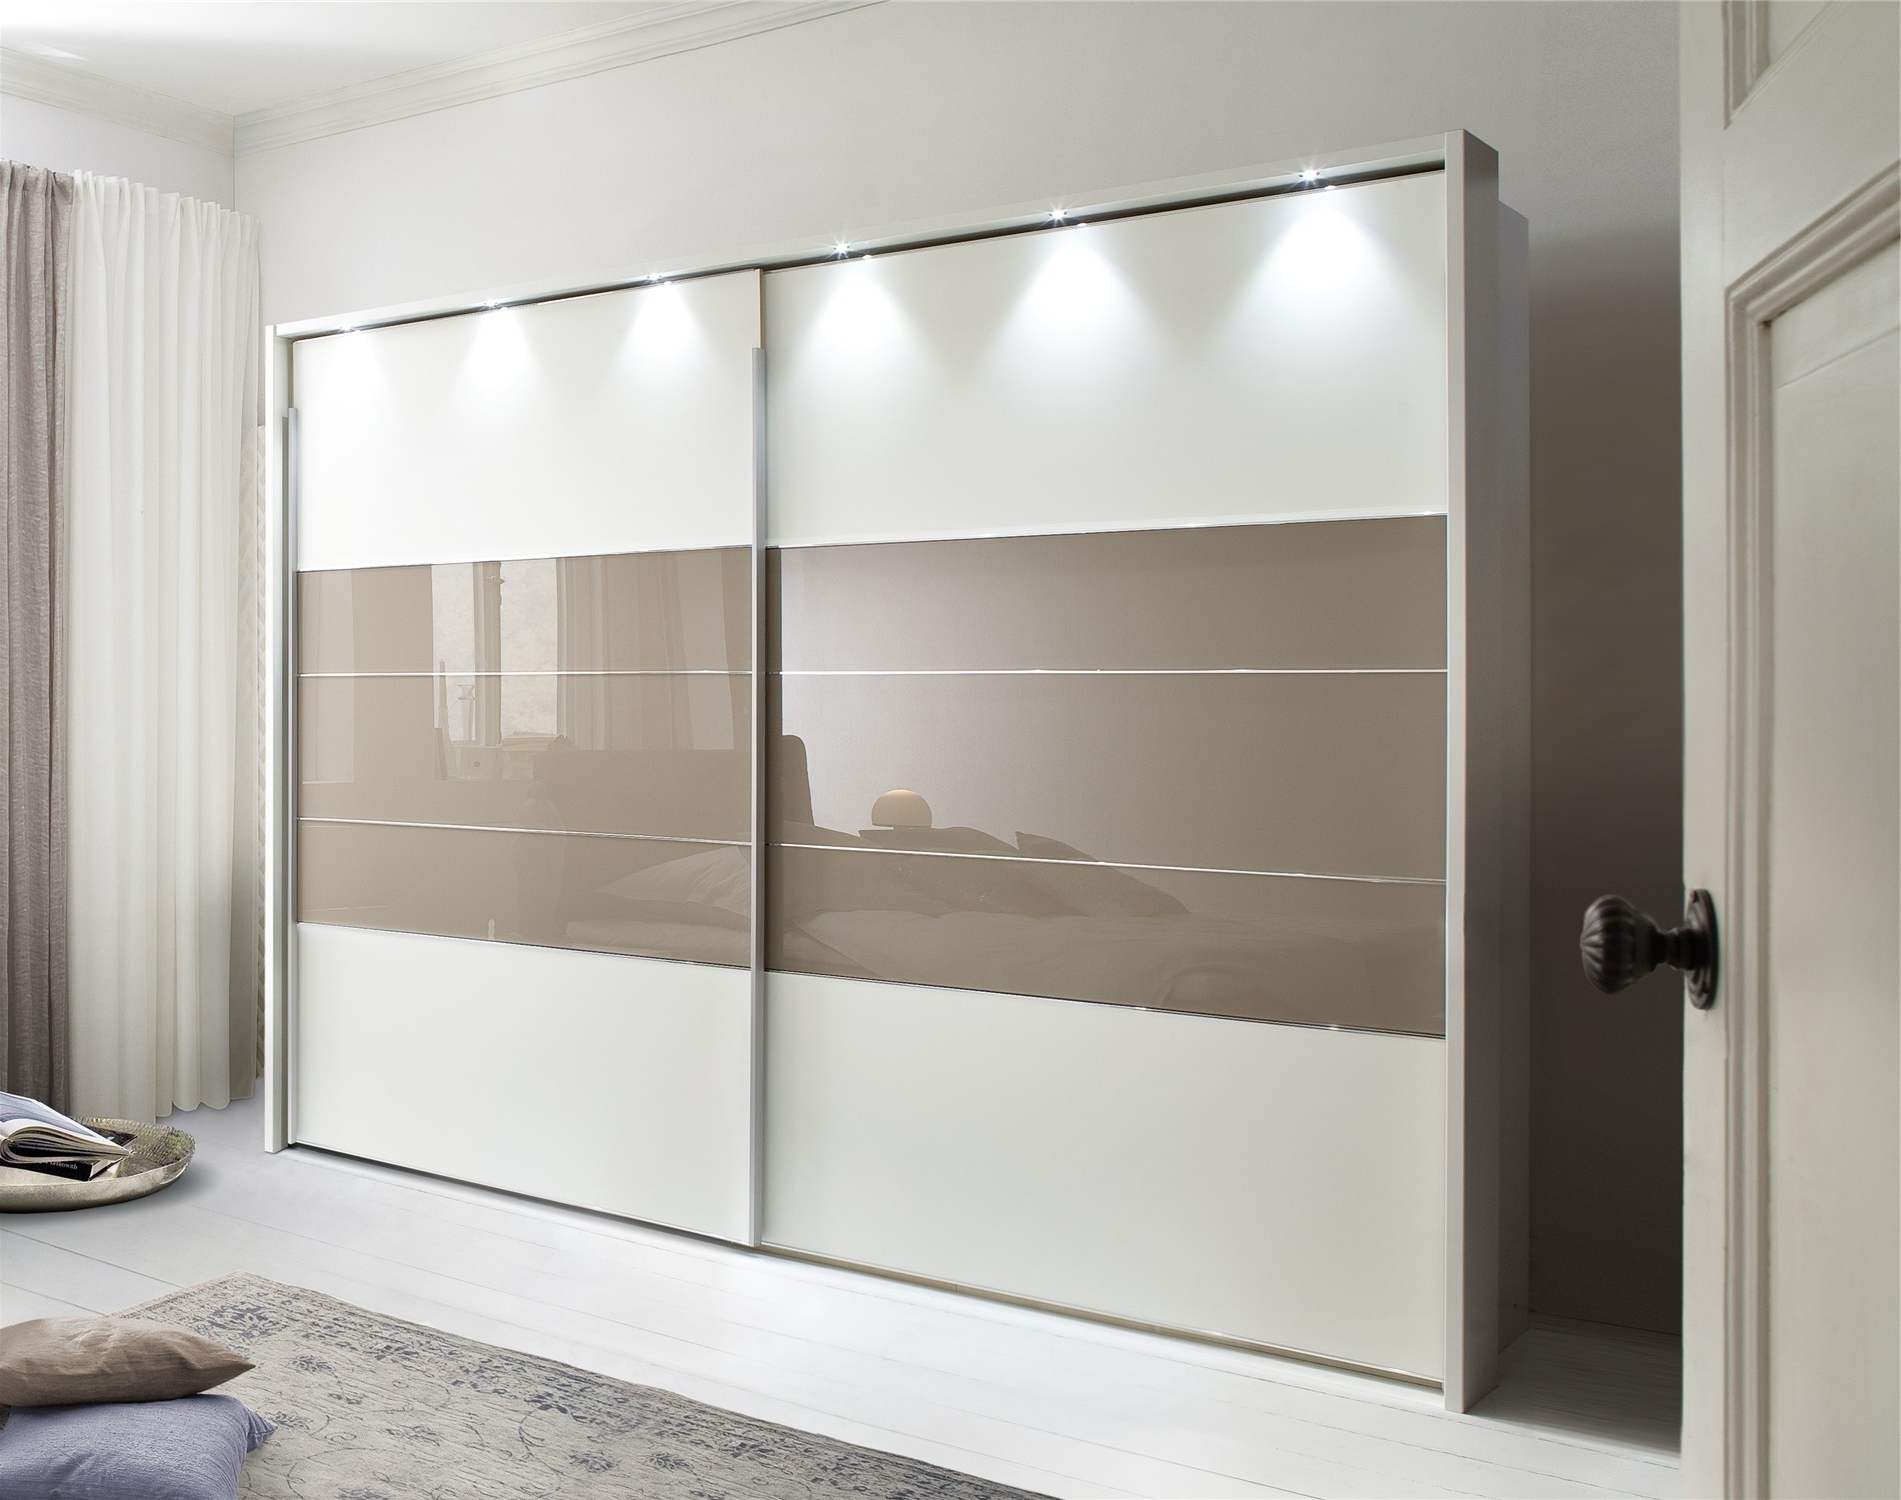 High Gloss Sliding Wardrobes Pertaining To Preferred Beautiful High Gloss White Sliding Wardrobe Doors – Badotcom (View 7 of 15)